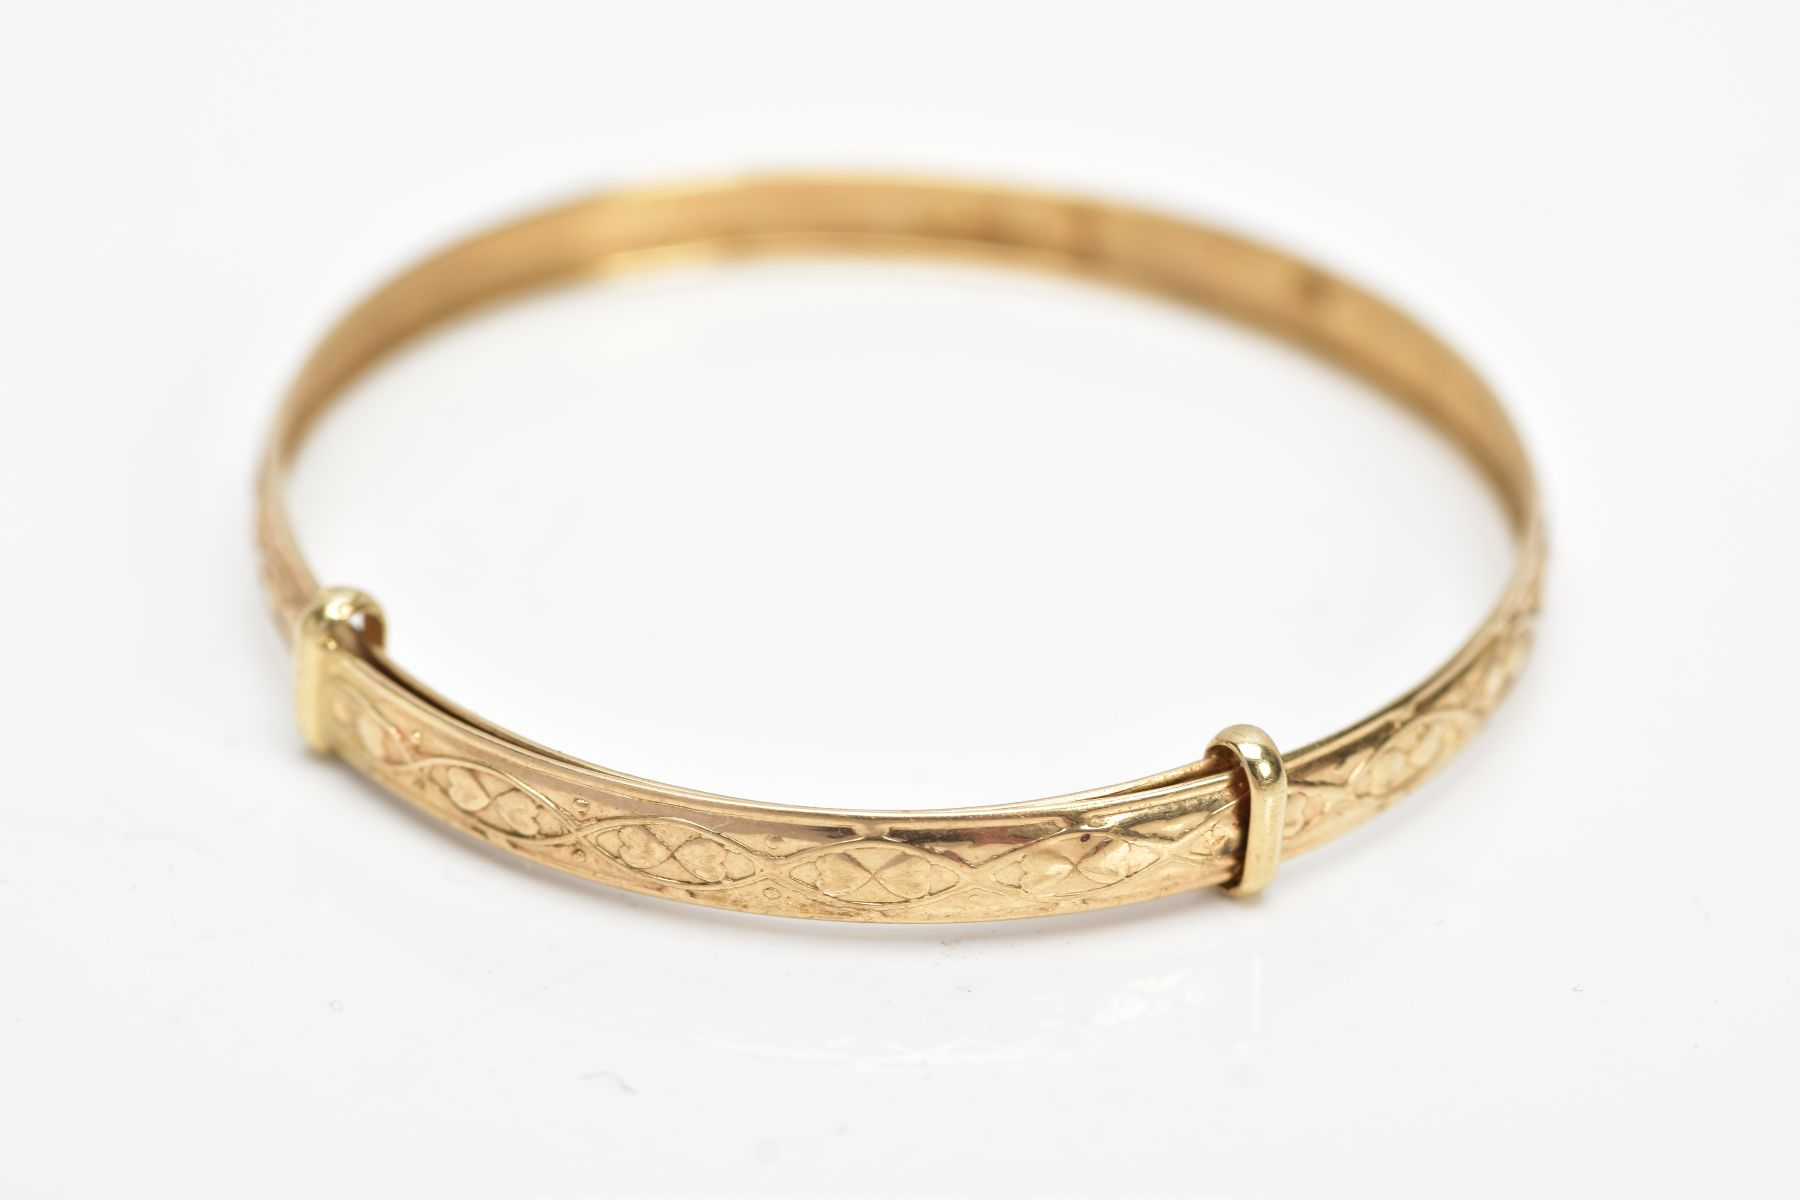 A 9CT GOLD CHRISTENING BANGLE, embossed heart and scroll design, hallmarked 9ct gold Birmingham, - Image 2 of 3